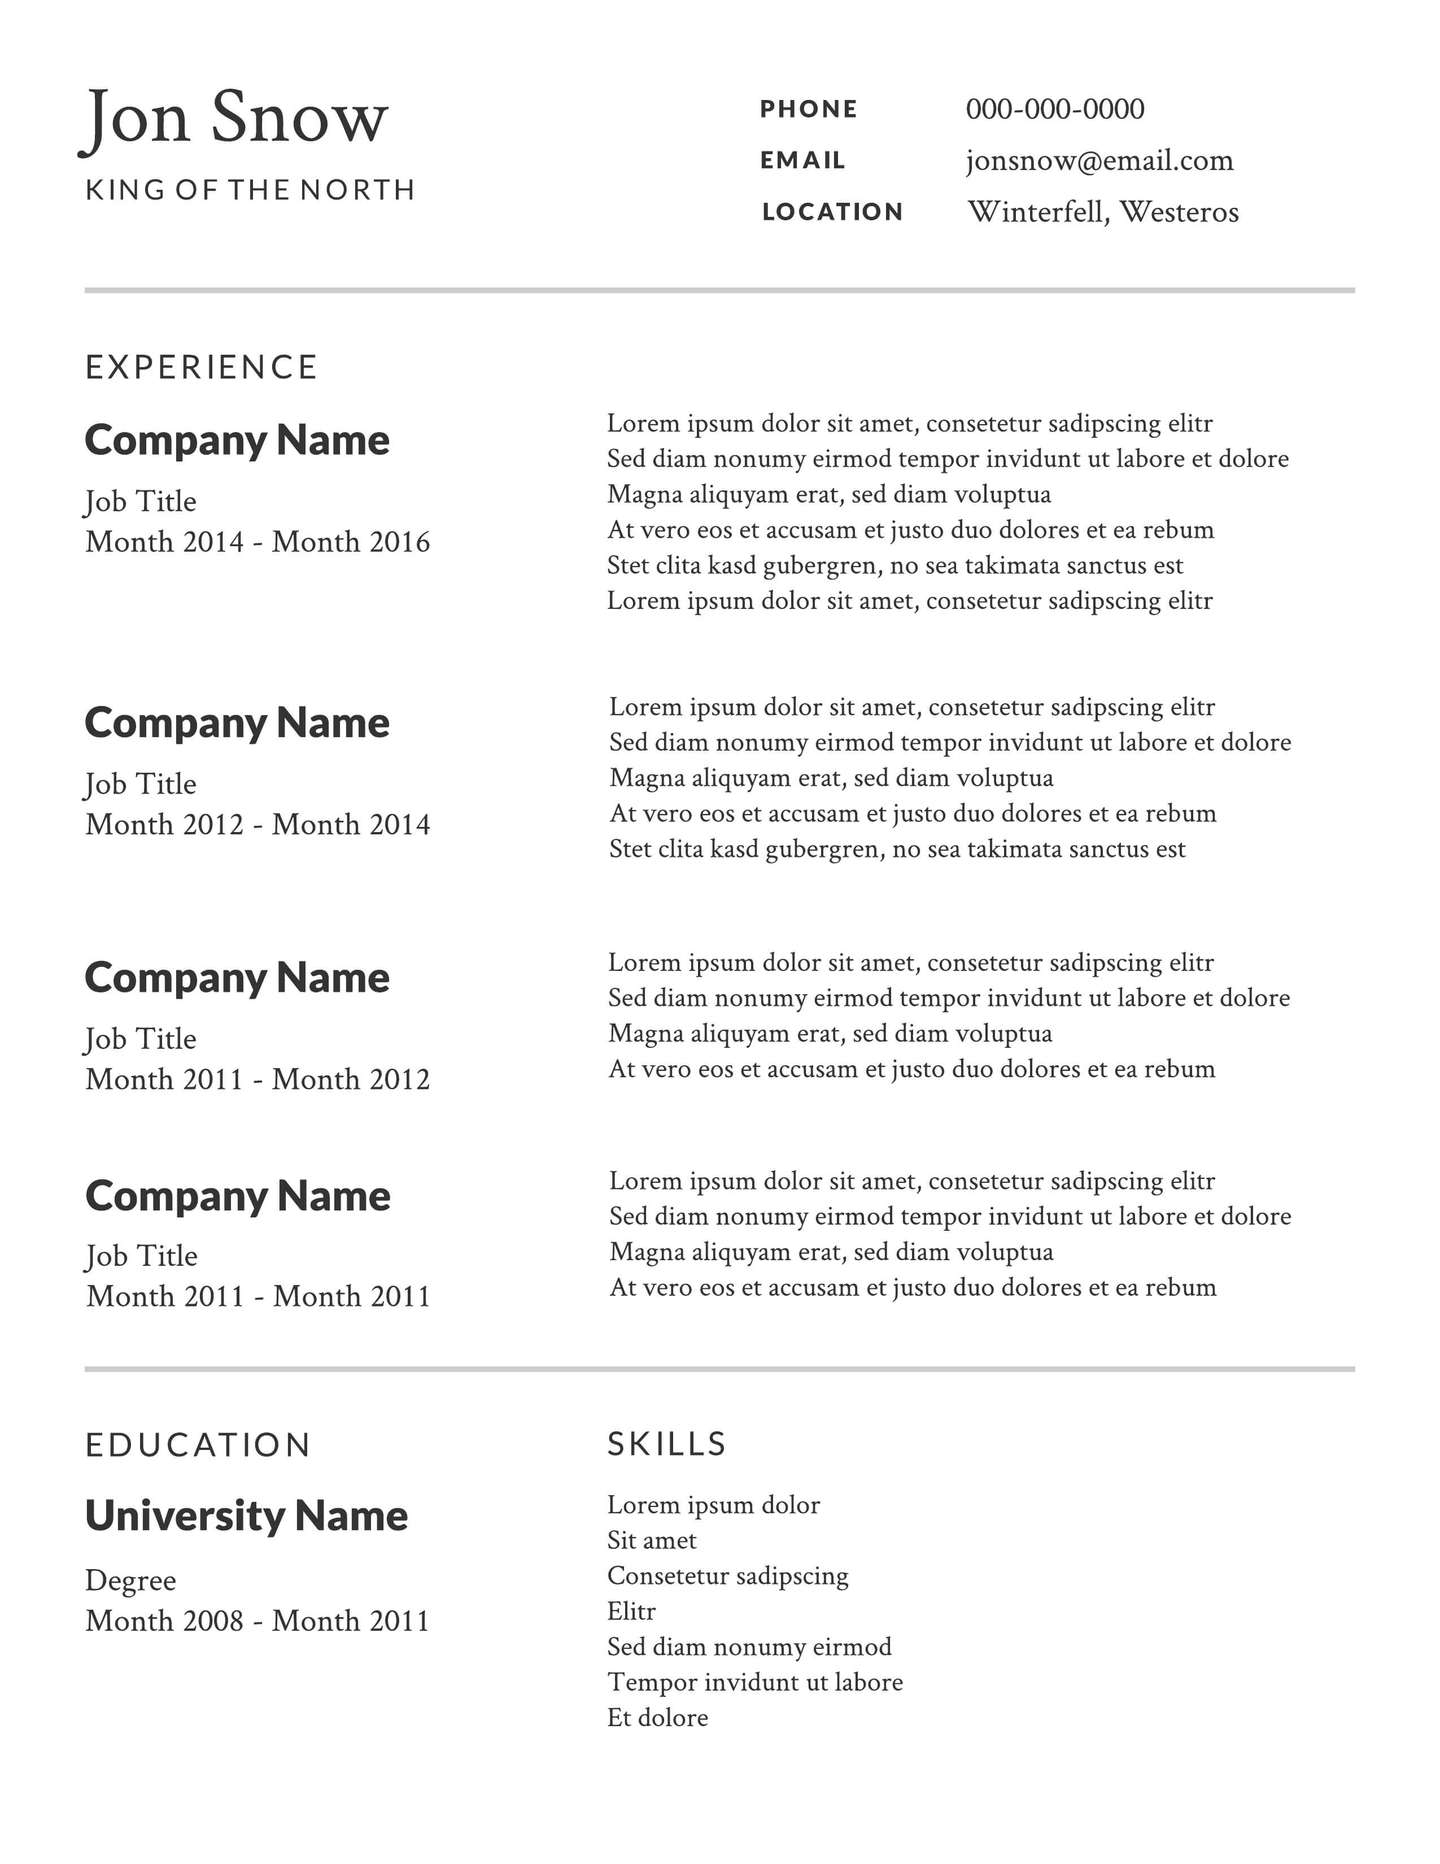 Professional Resume Help Free